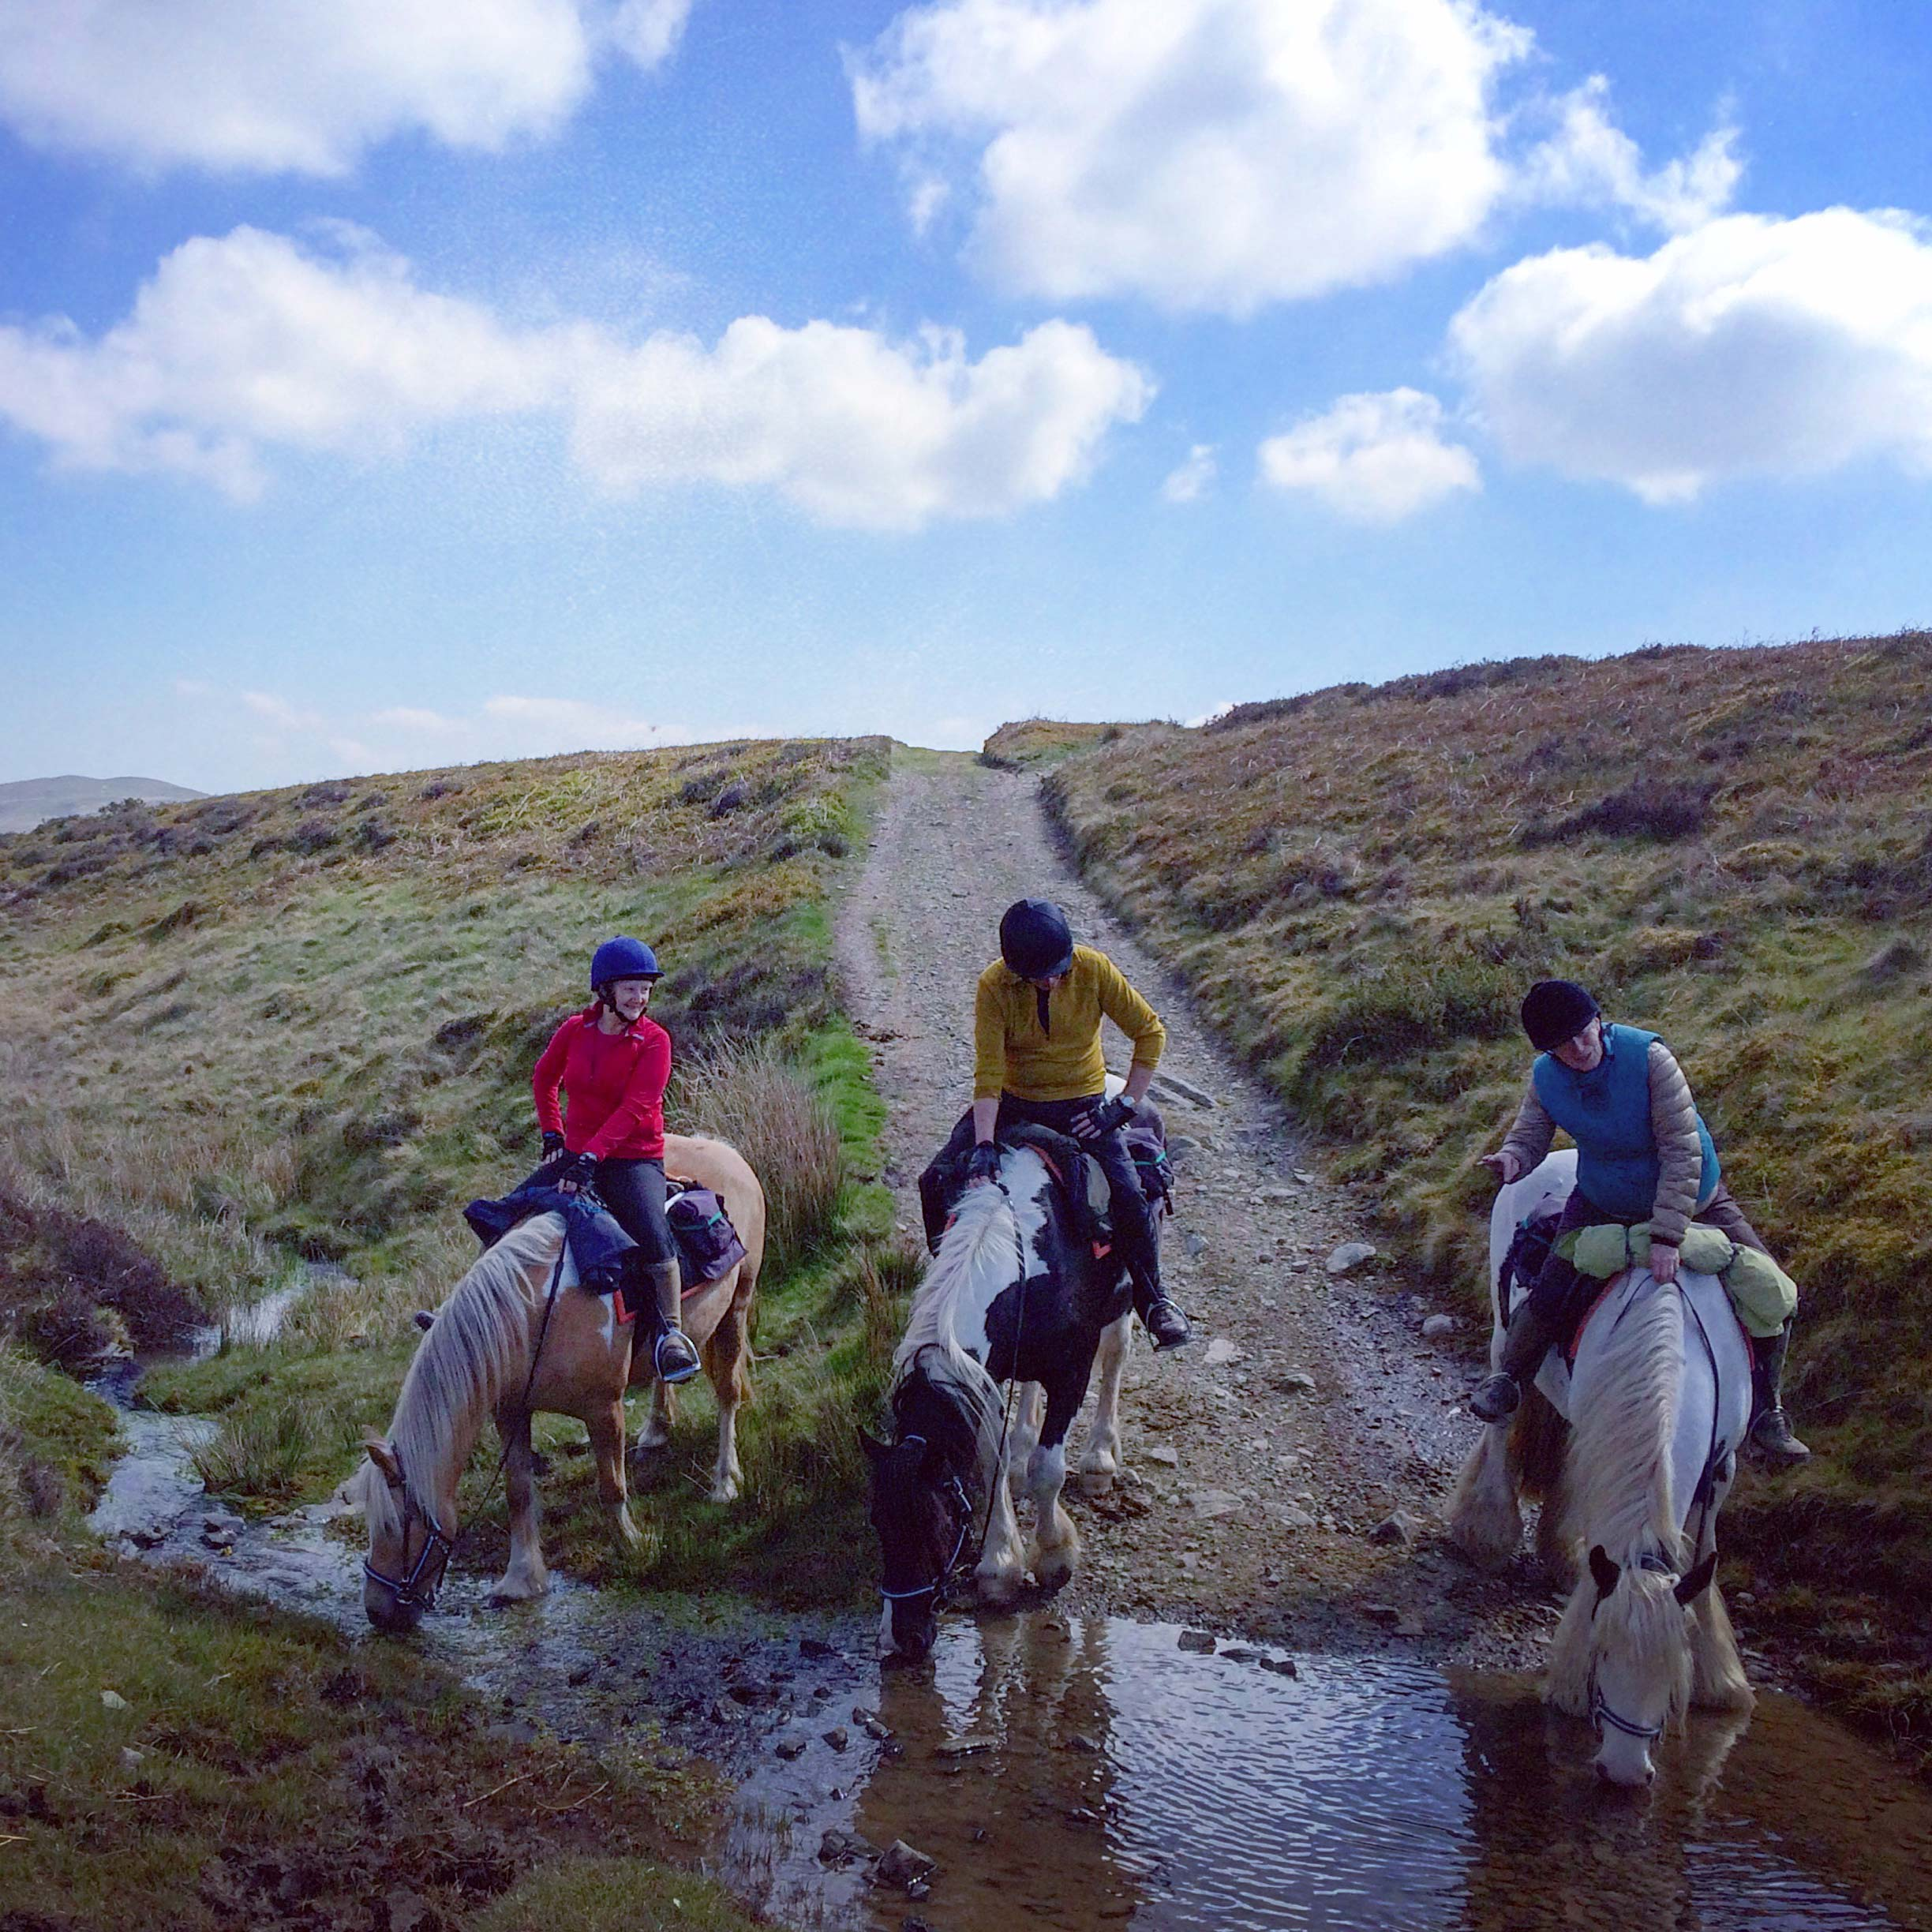 Horses drink from a remote stream out in the hills